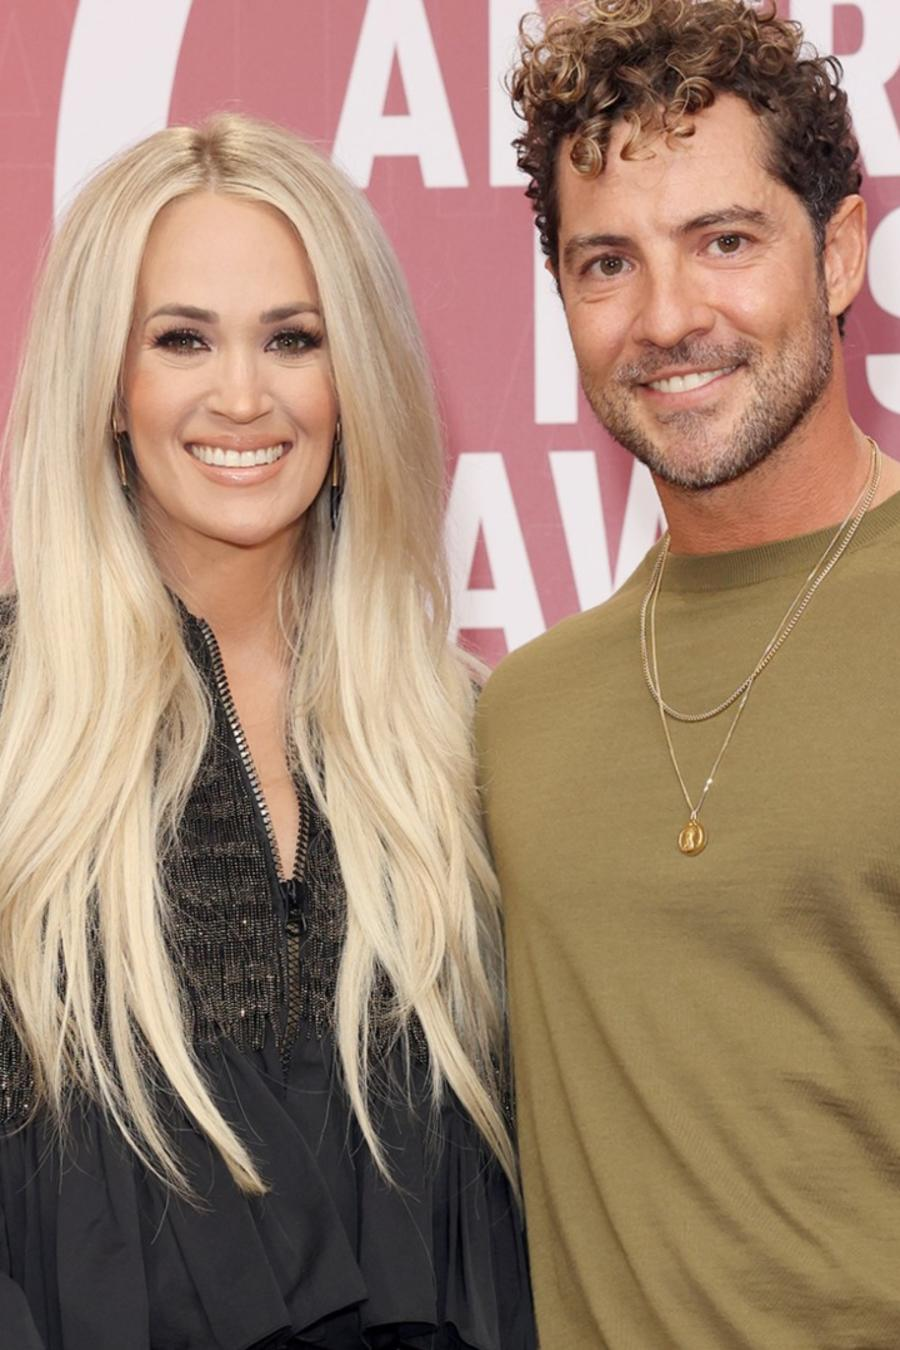 David Bisbal y Carrie Underwood at the backstage of Latin American Music Awards 2021